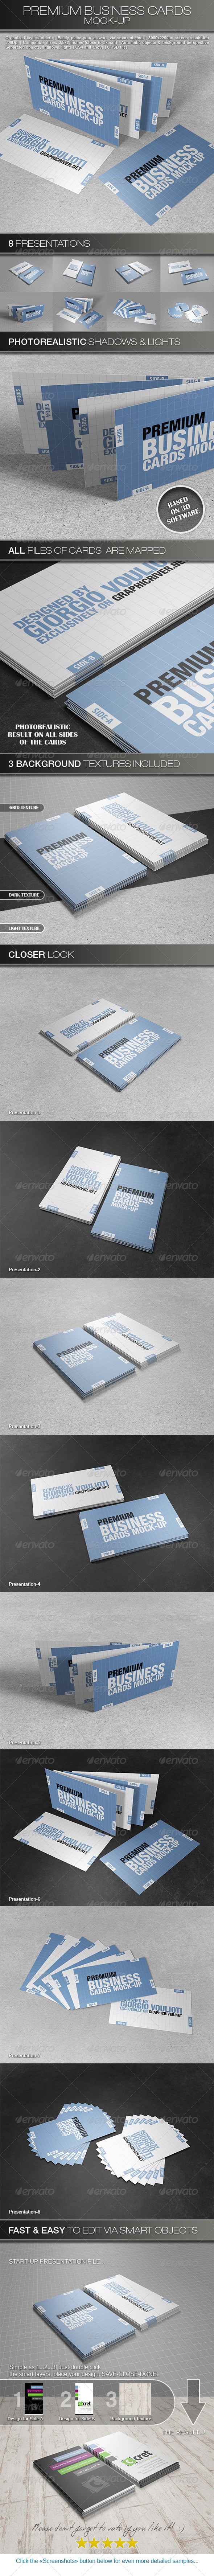 GraphicRiver Premium Business Cards Mock-Ups 4831991